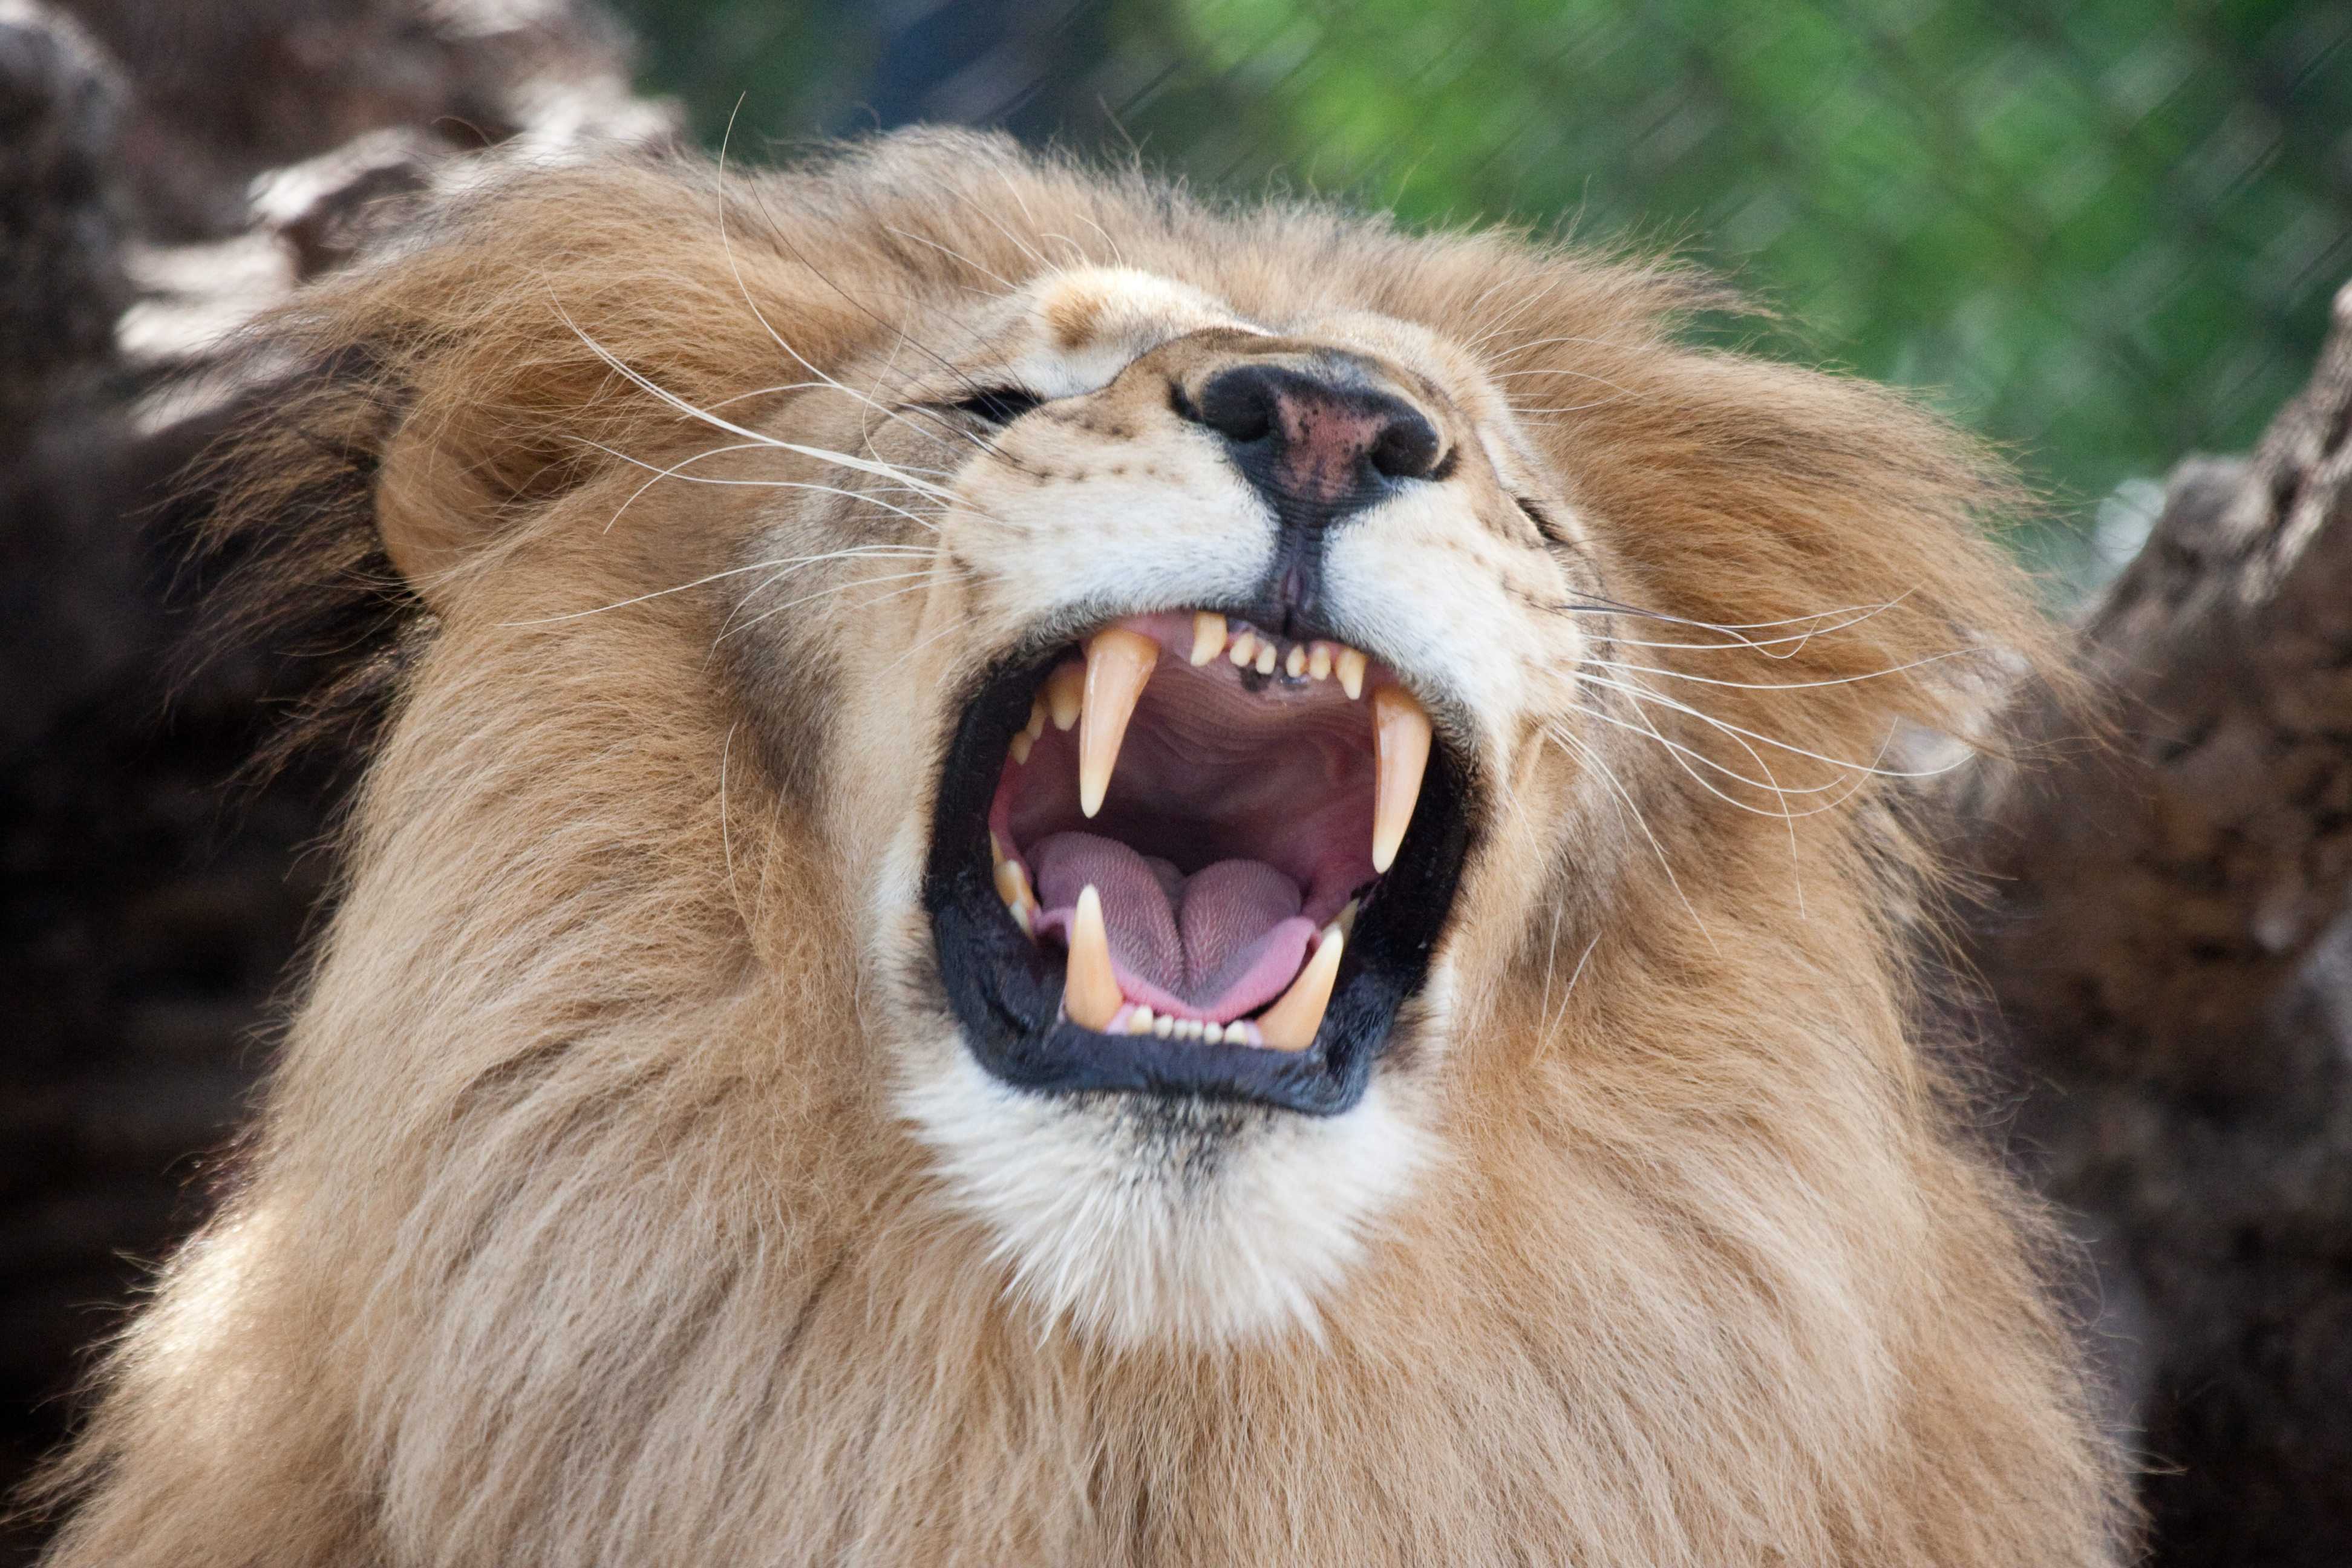 Teeth of the Lion | Flickr - Photo Sharing!